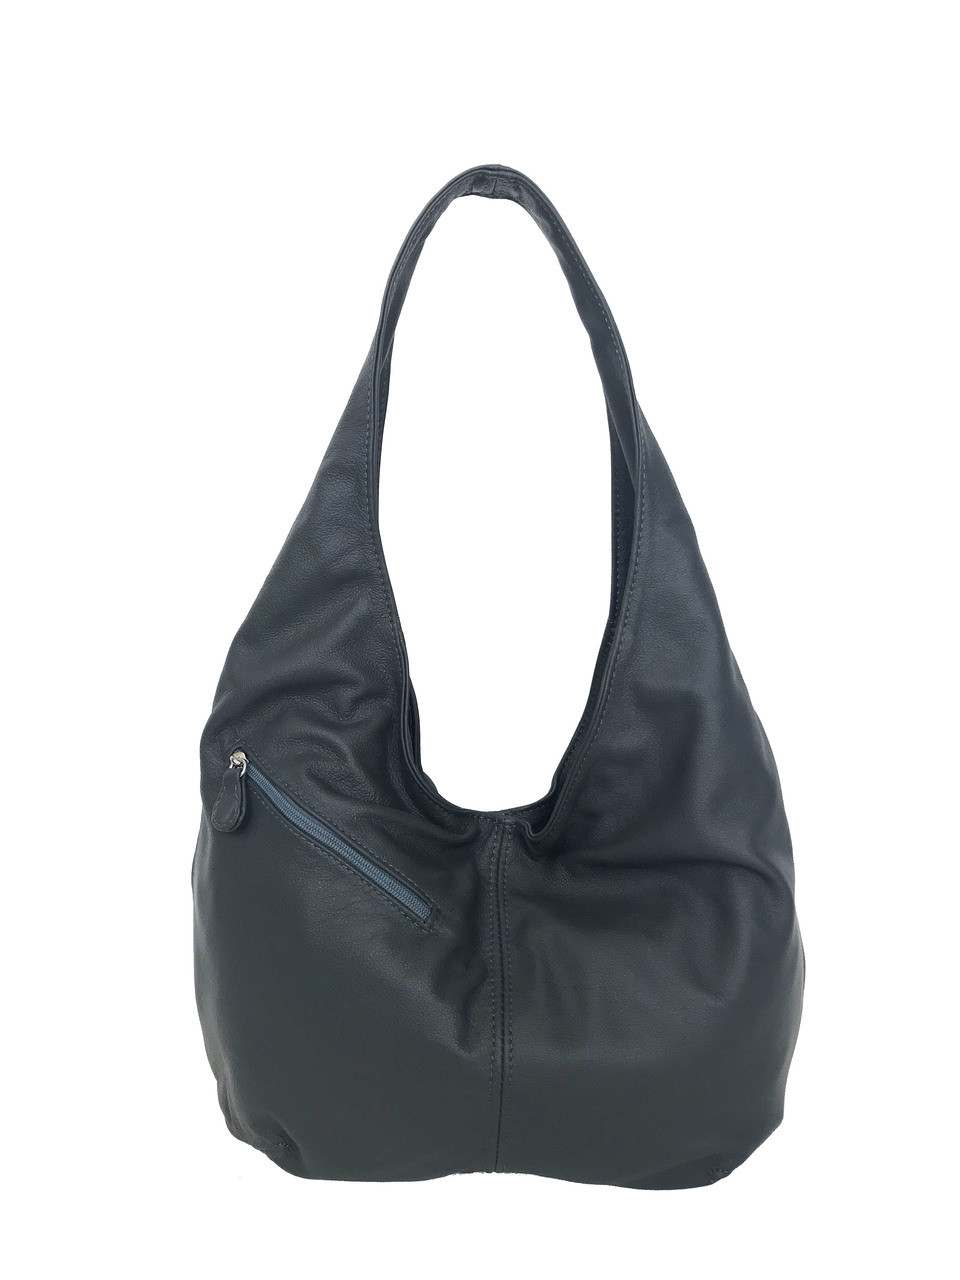 Gray Leather Hobo Bag w  Pockets b5e5b3566e6a1